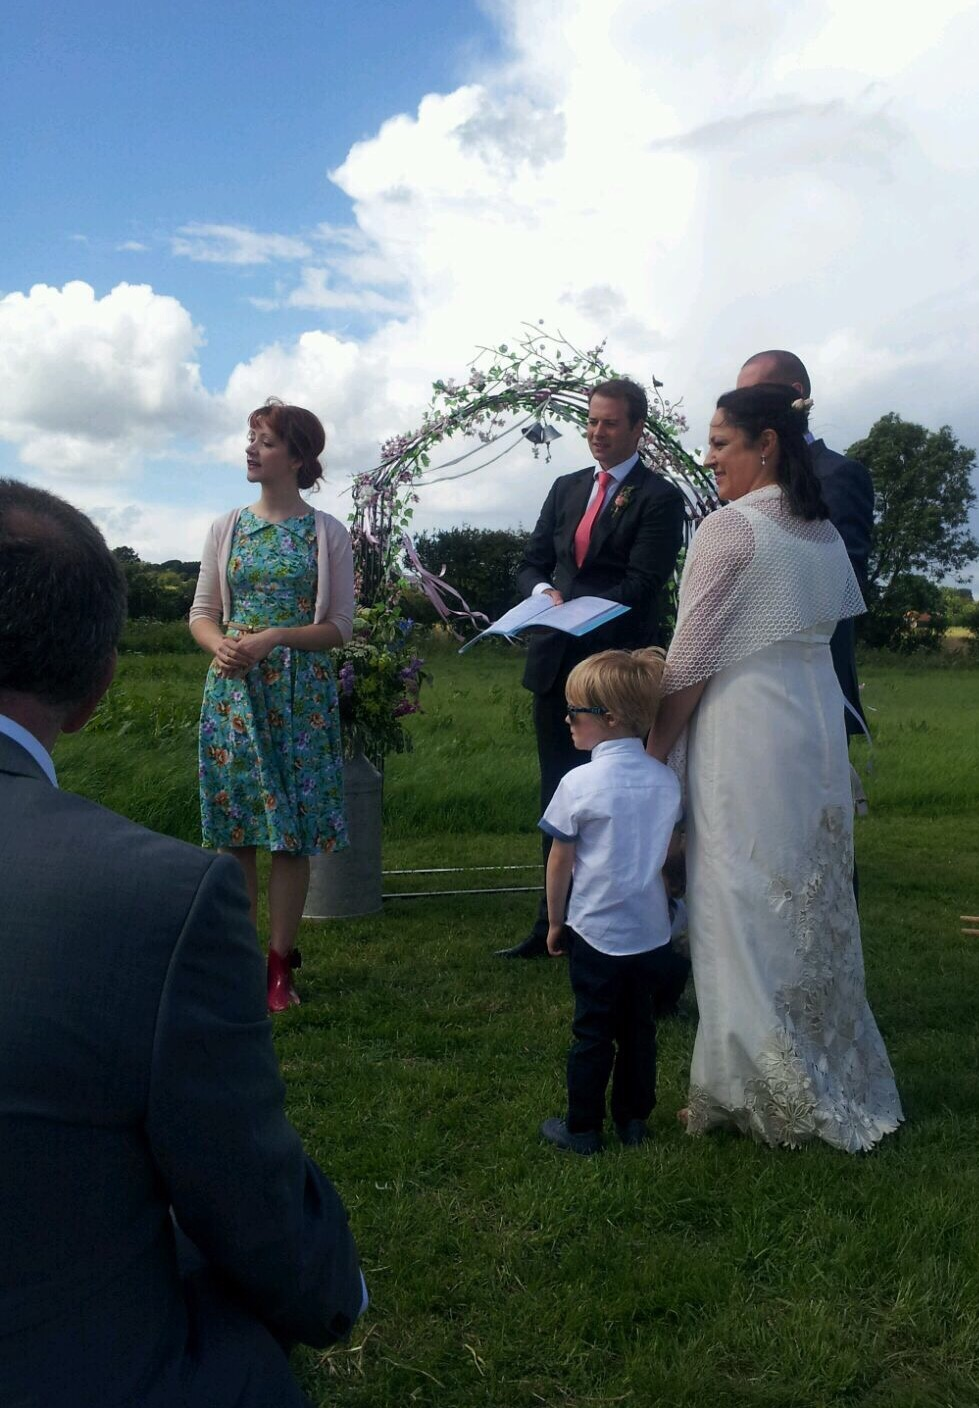 samantha kelsie wedding celebrant outdoor farm wedding uk